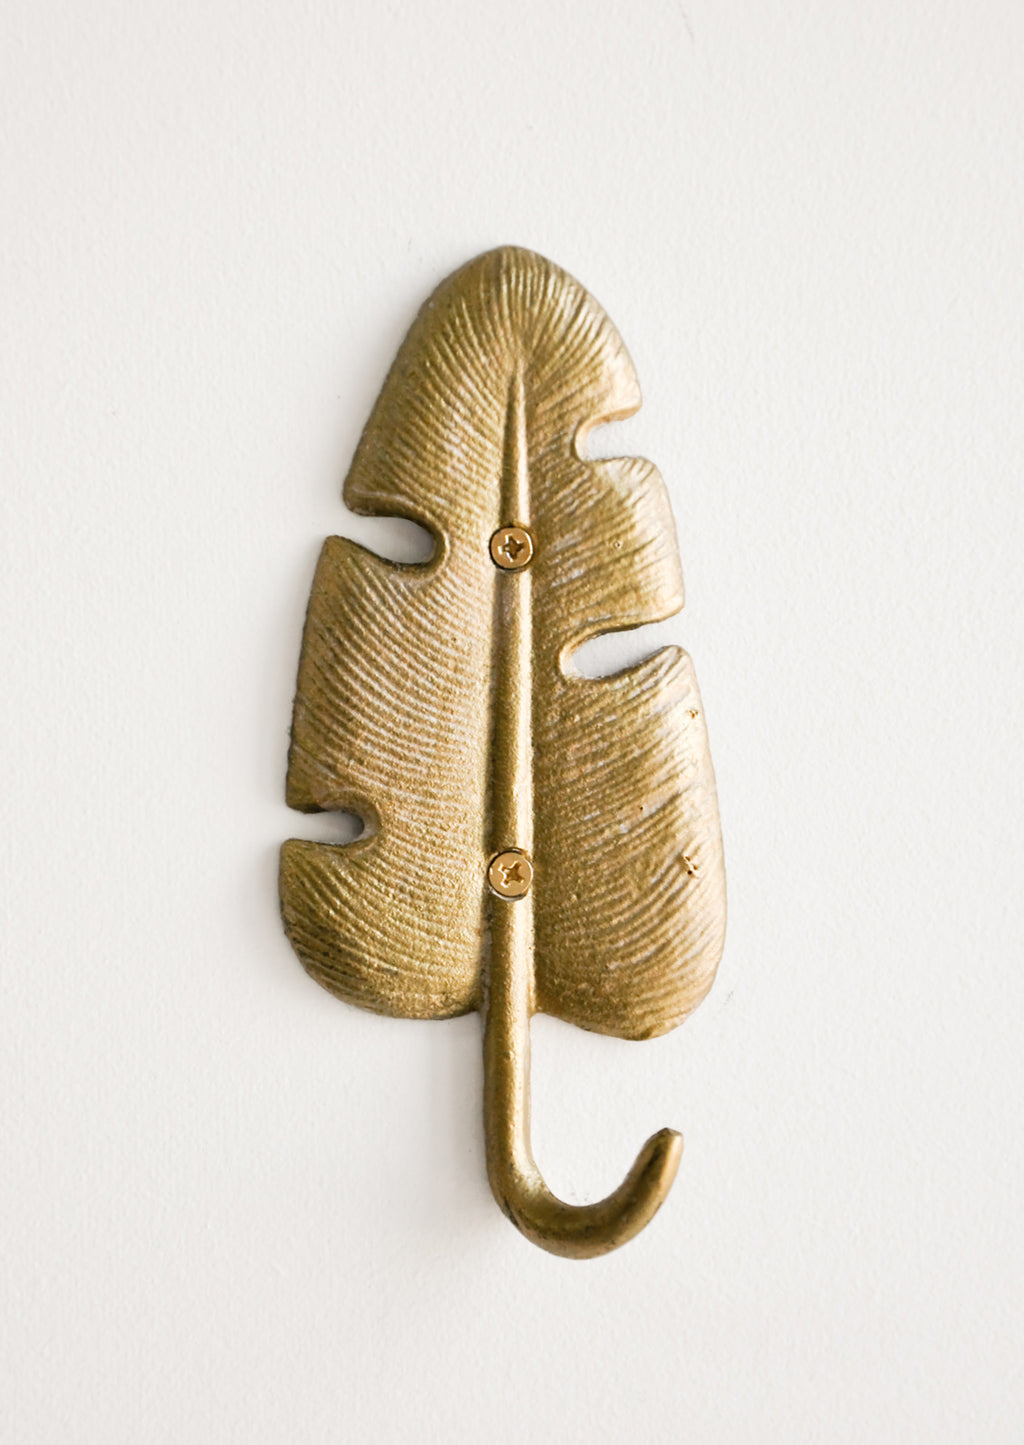 Banana Leaf: Gilded Leaf Wall Hook in Banana Leaf - LEIF